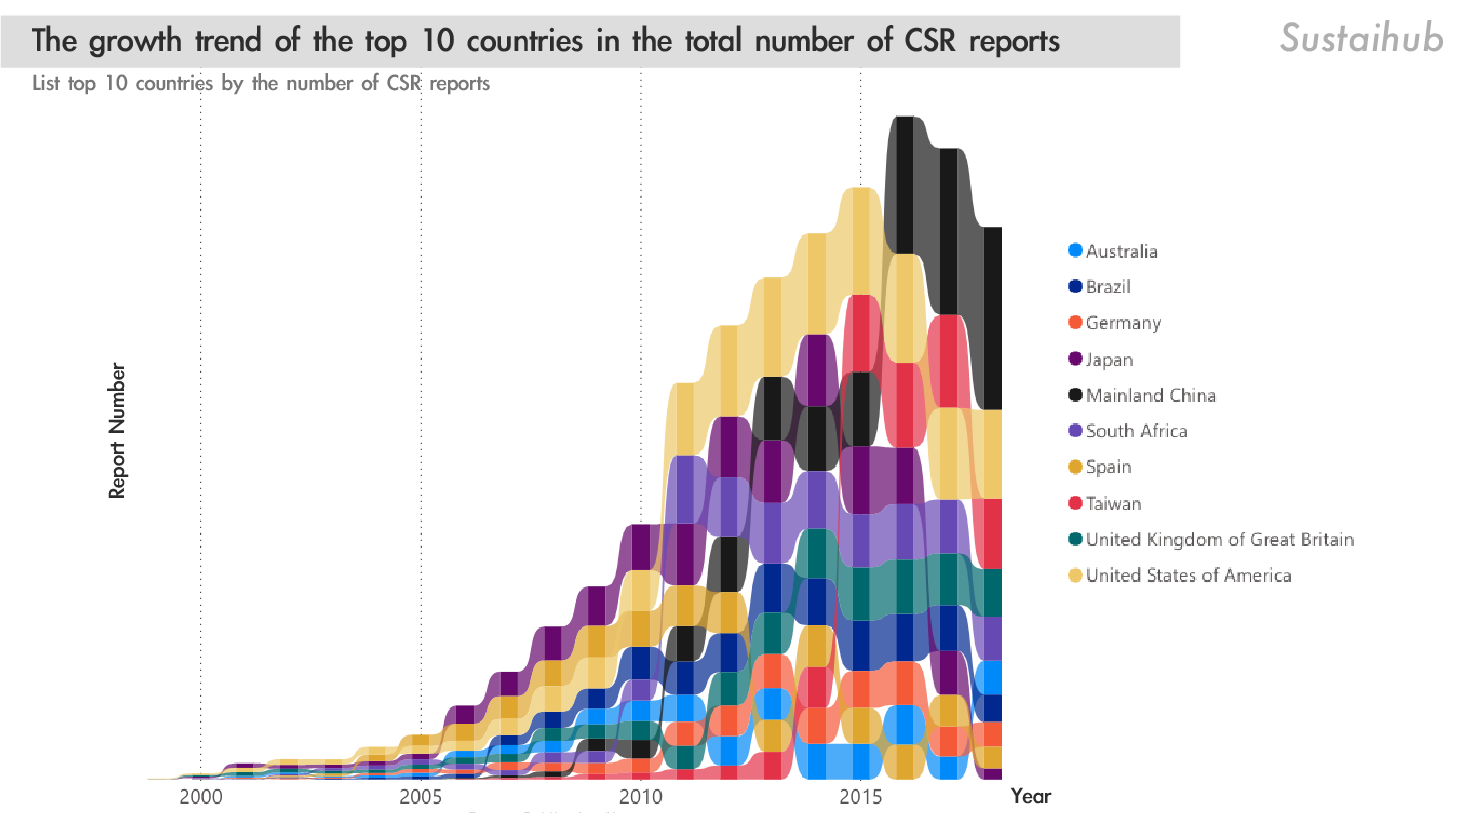 CSR報告總數排名前十的國家,在歷年成長的報告數量變化 The growth trend of the top 10 countries in the total number of CSR reports